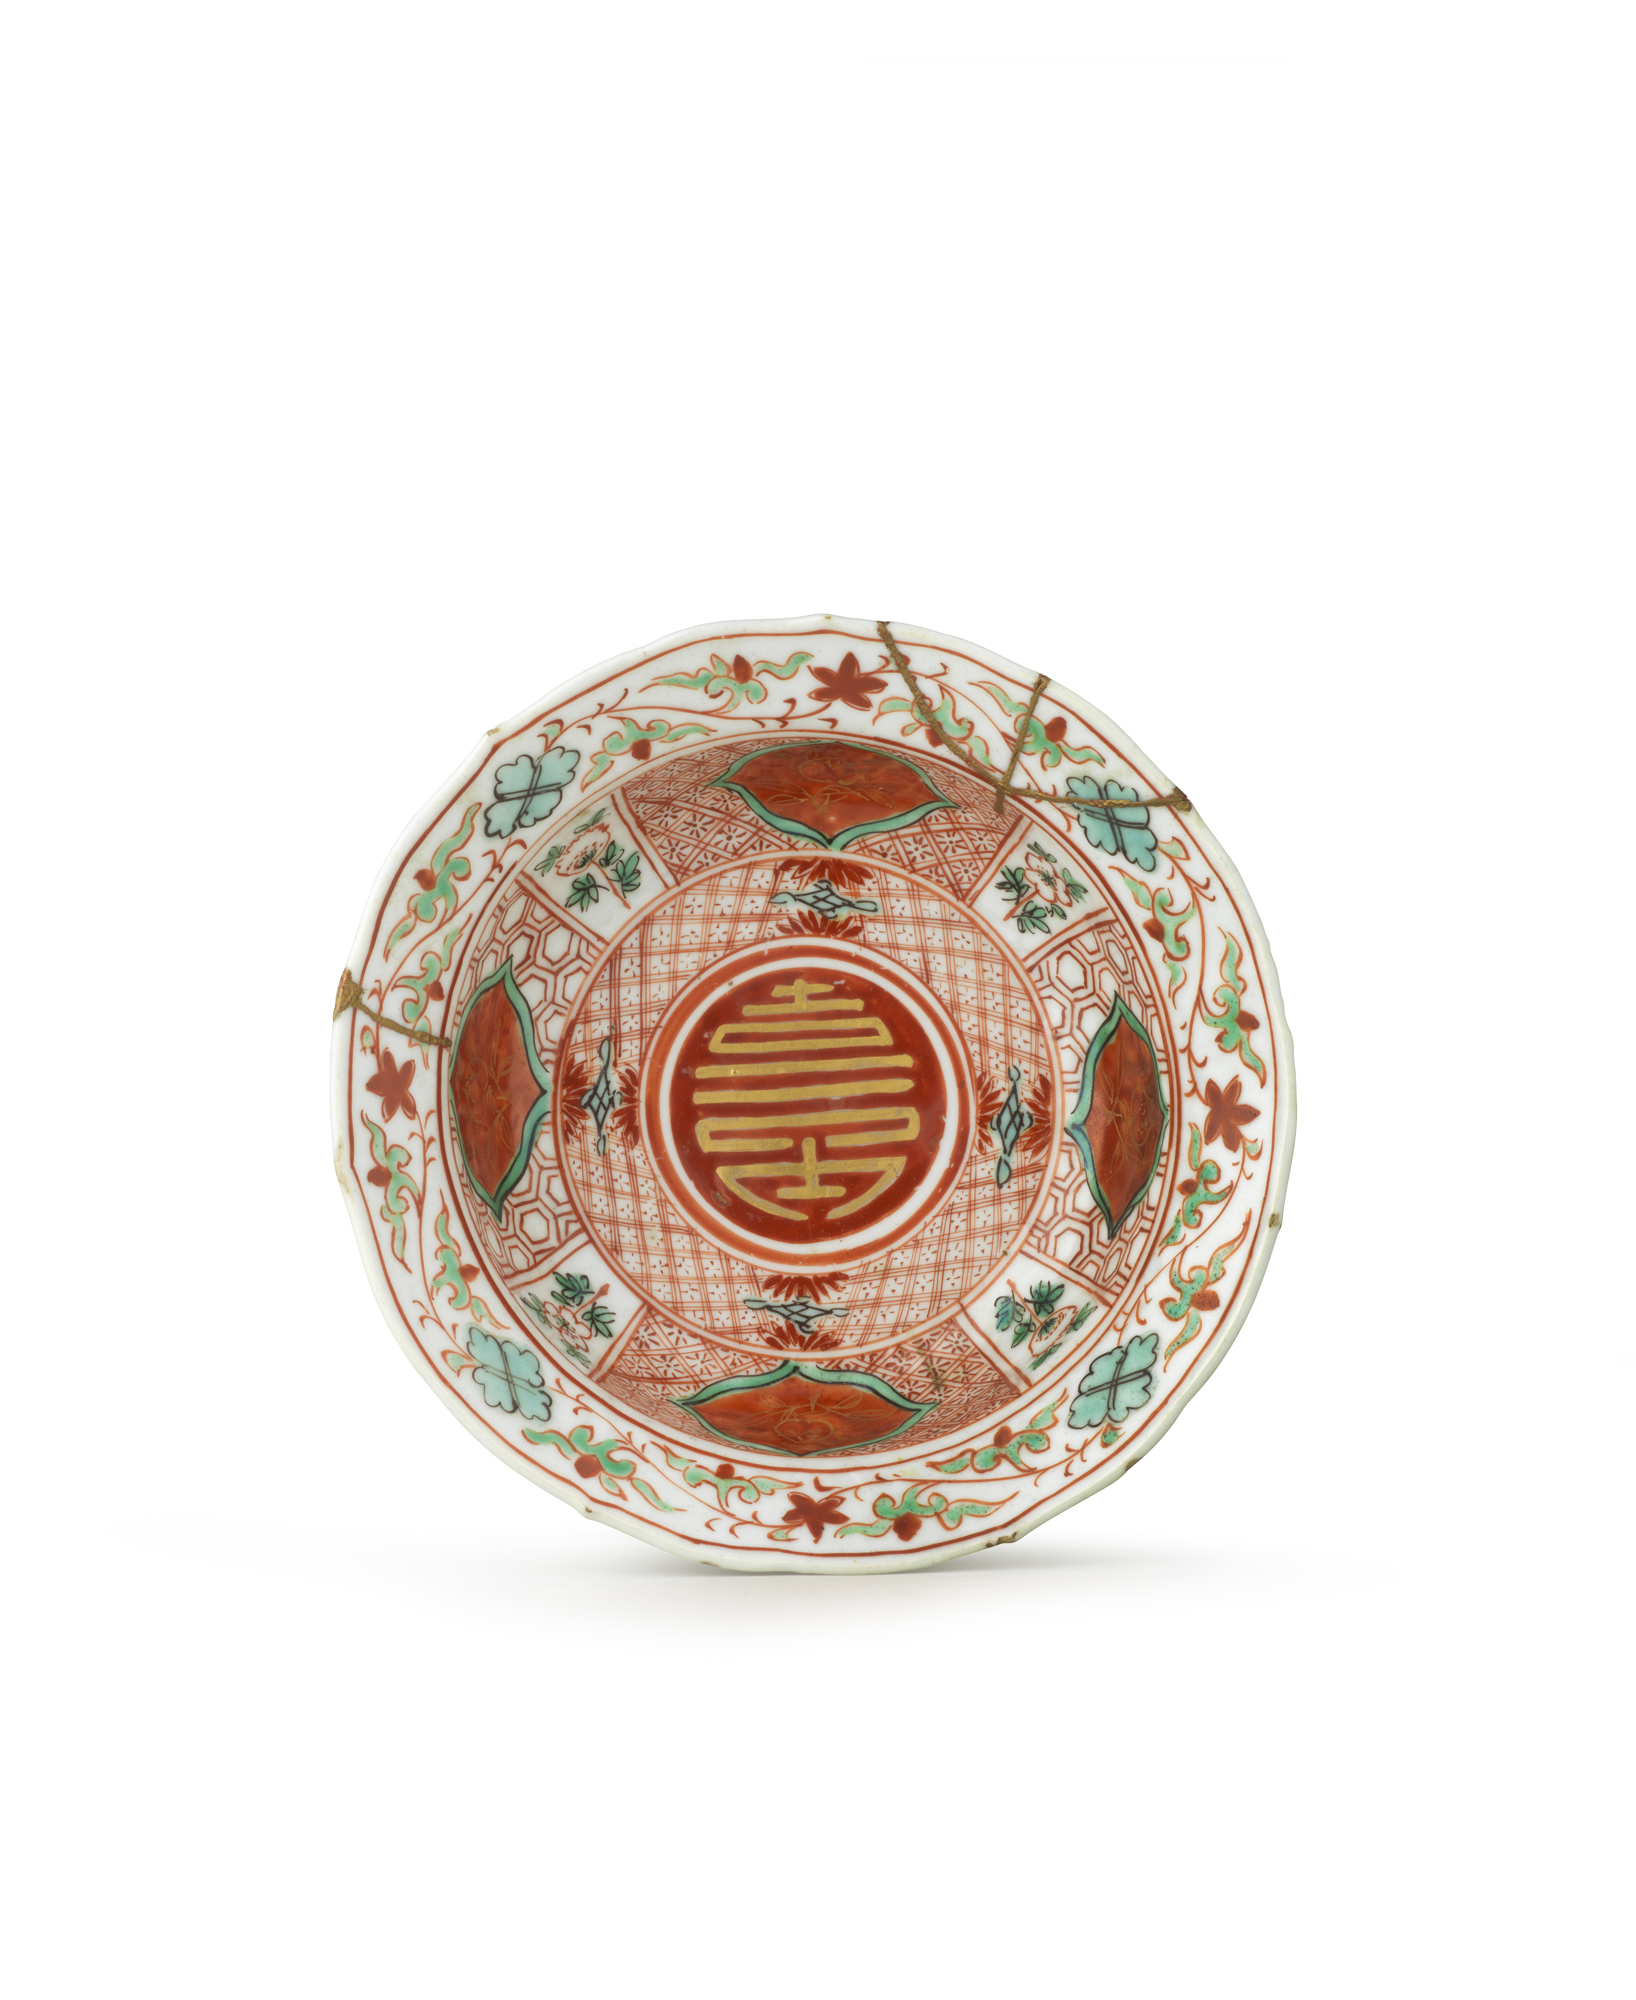 Porcelain decorated in overglaze iron-red, turquoise and green enamels, and gold; gold laquer China — Ming dynasty (1368–1644), late 16th to early 17th century H. 5 Ø 14.5 cm